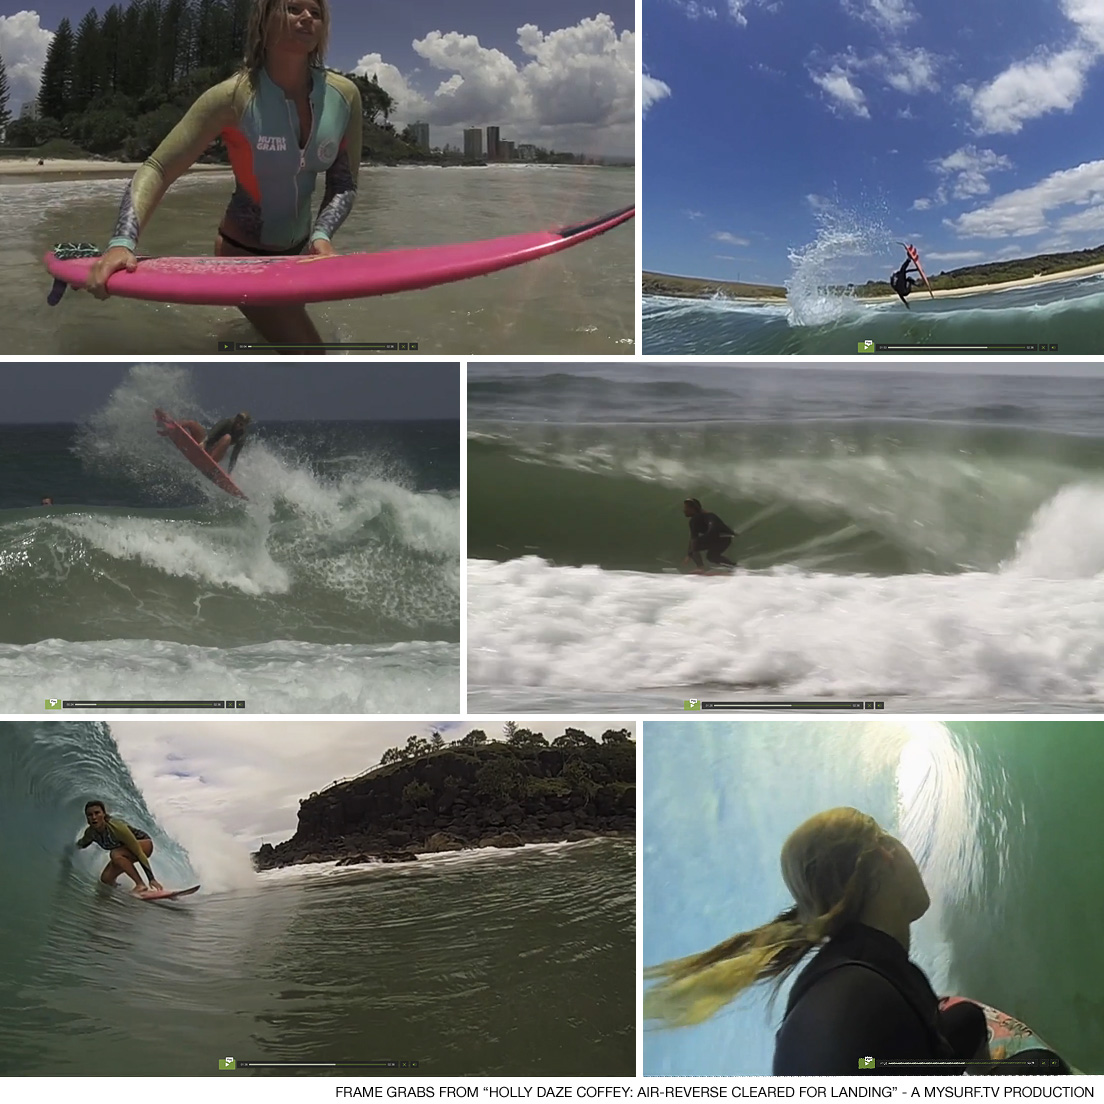 Holly Daze Coffey: Air Reverse Cleared For Landing - a mySURF.tv production - surfer girl video